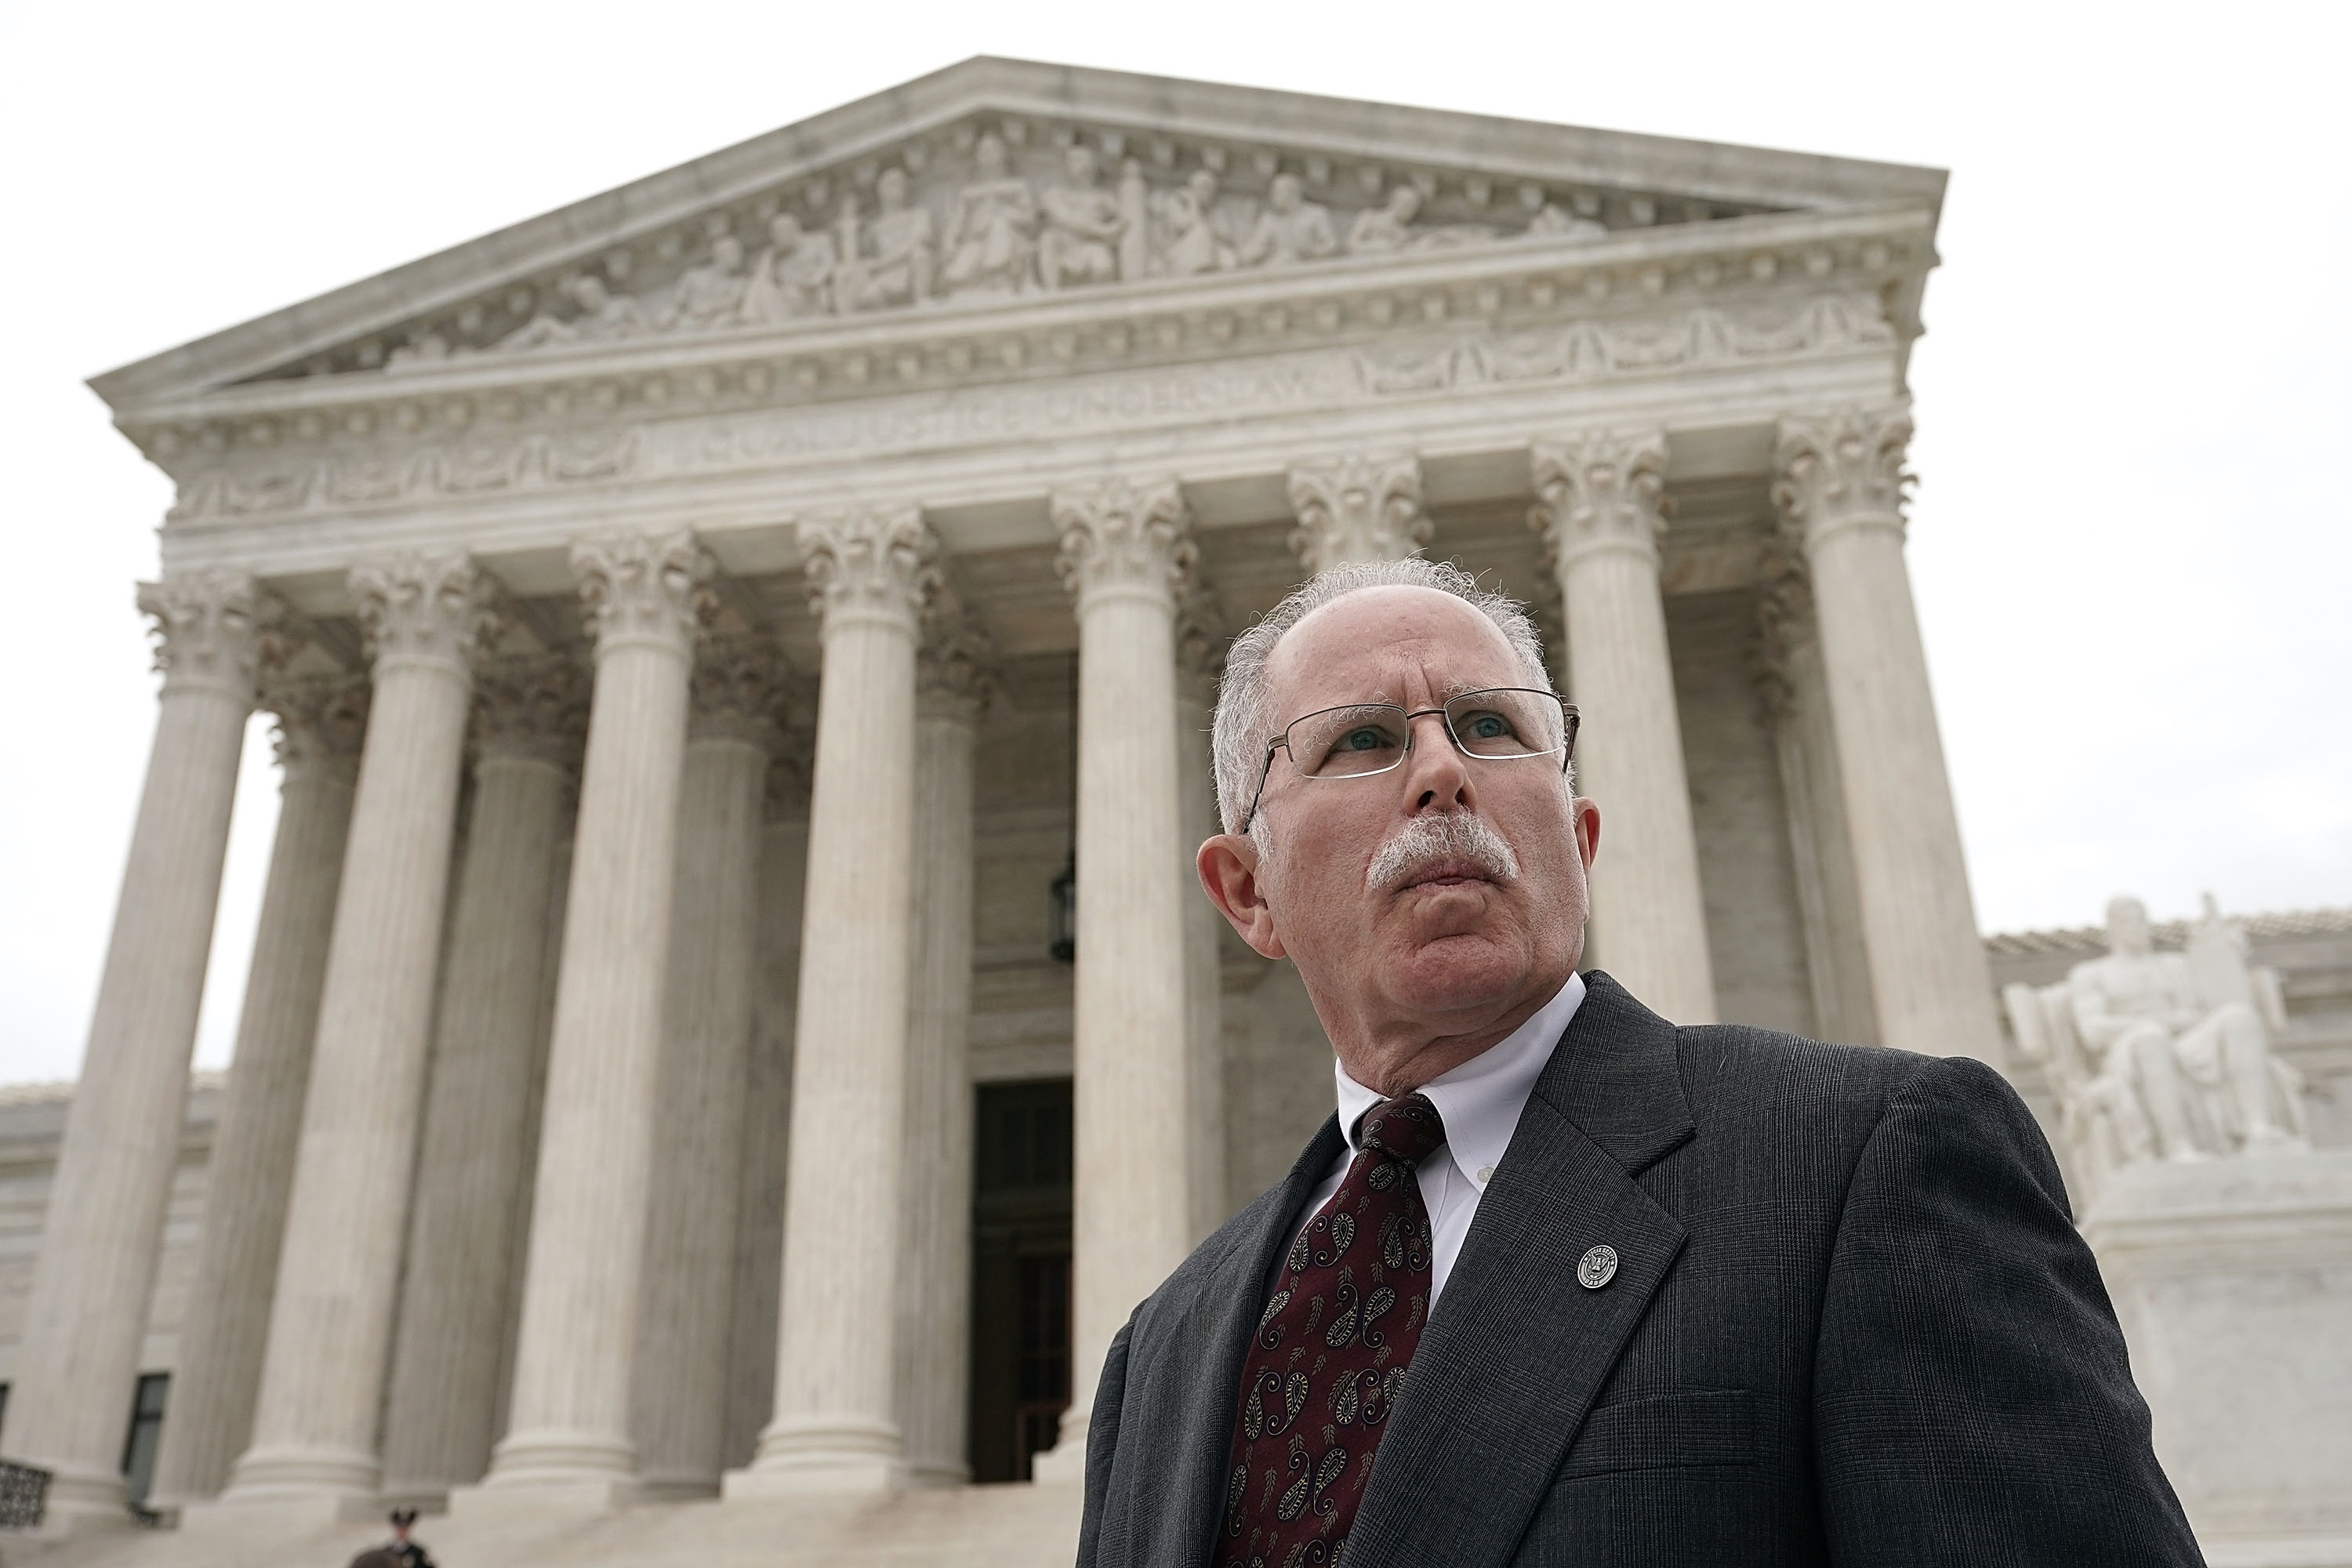 Mark Janus in front of the Supreme Court on February 26, 2018. (Alex Wong/Getty Images)